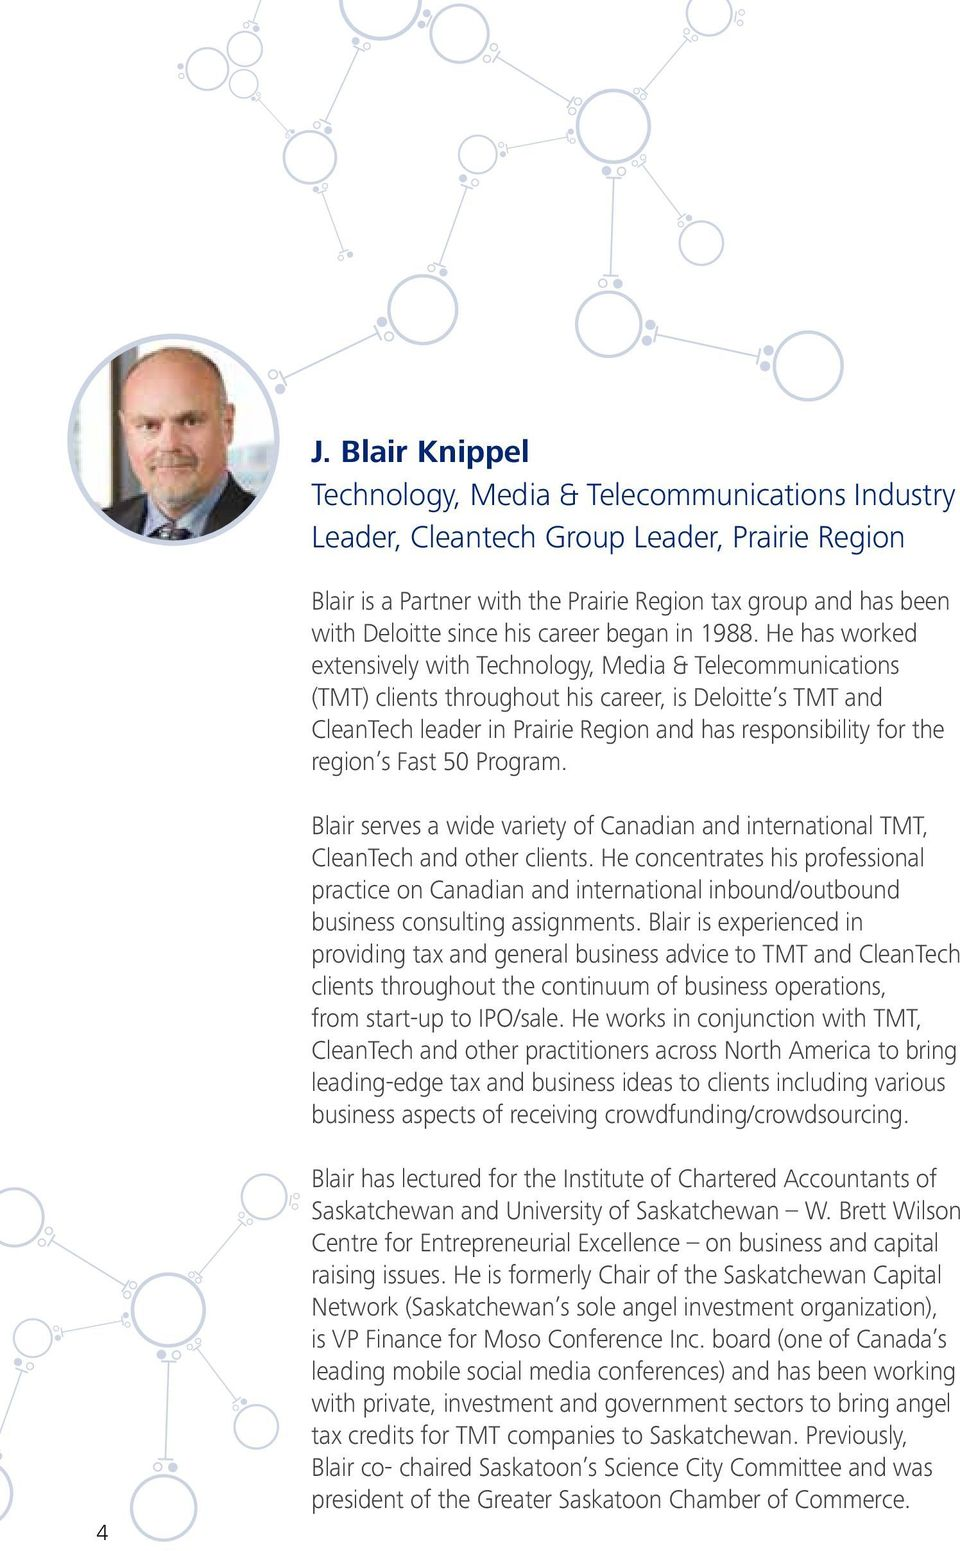 Blair serves a wide variety of Canadian and international TMT, CleanTech and other clients.